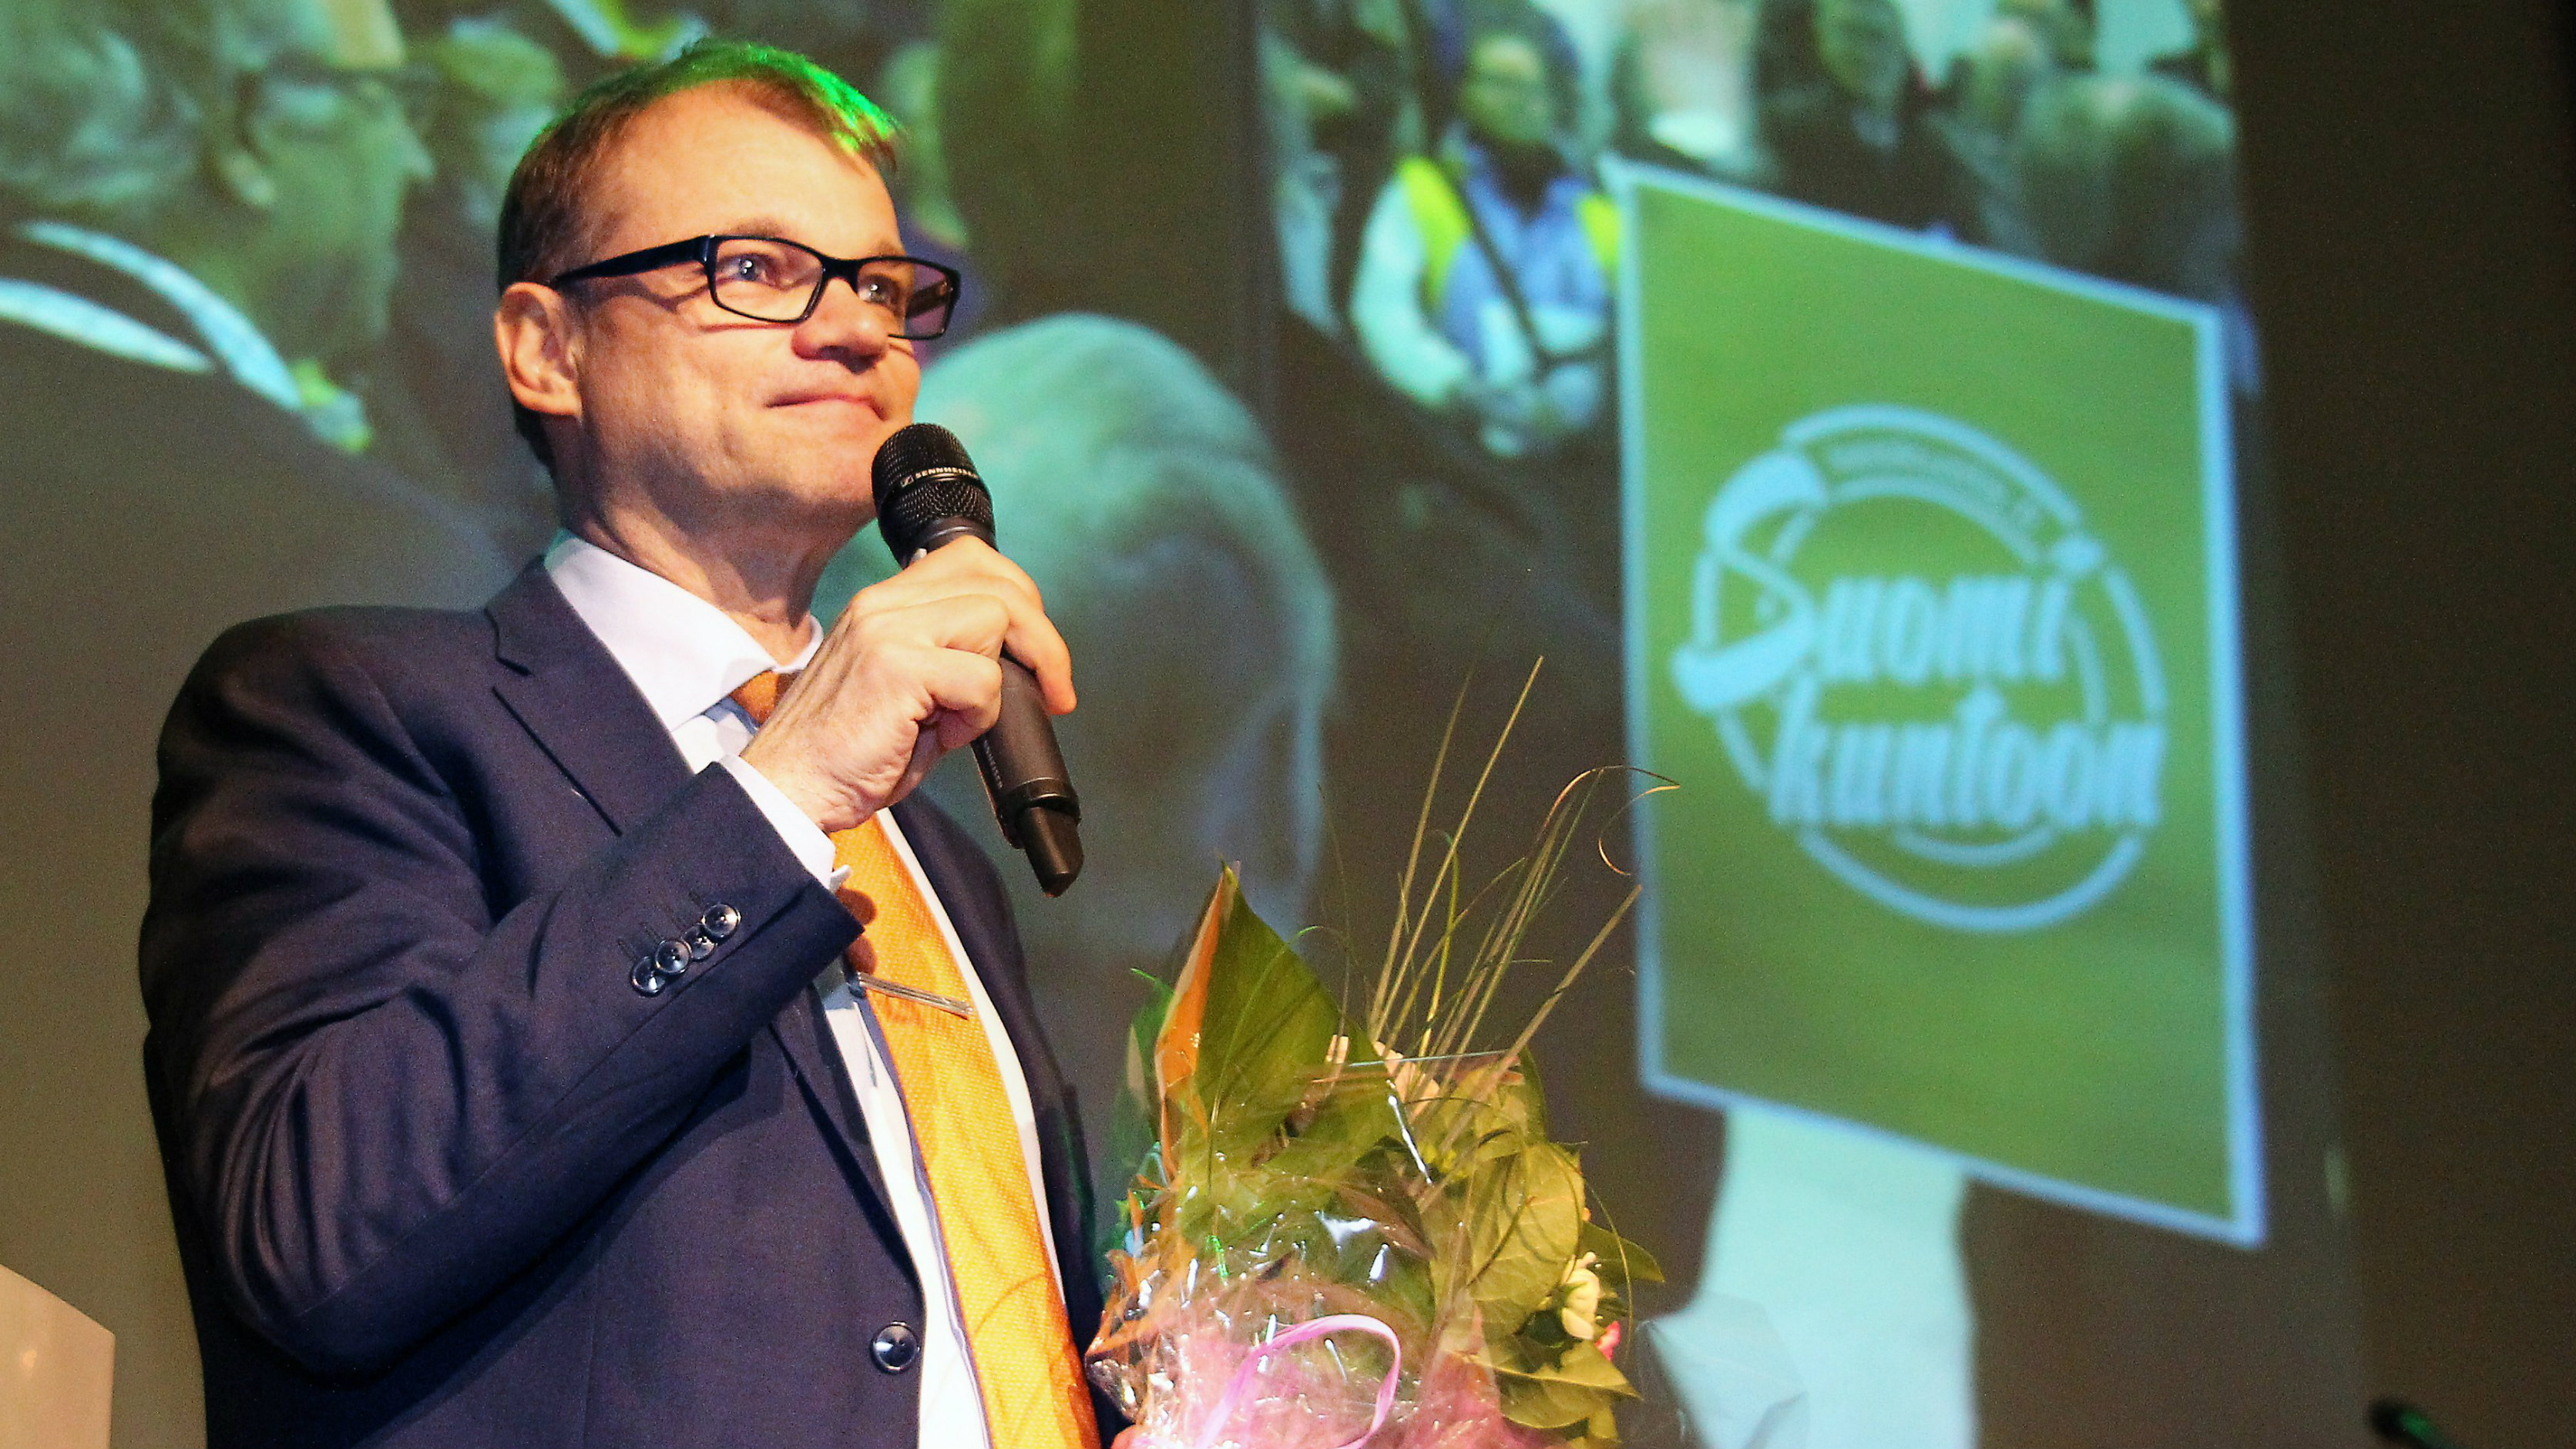 Center Party chairman Juha Sipila makes a speech at the party's election celebrations in Oulu, Finland, Monday April 20, 2015, the day after the elections. The opposition Center Party has won Finland's parliamentary election but its new leader faces tough talks on forming a government following the success of the populist, anti-establishment Finns Party that placed ahead of the main government partners, the conservatives and Social Democrats. (Markku Ruottinen/Lehtikuva via AP) FINLAND OUT